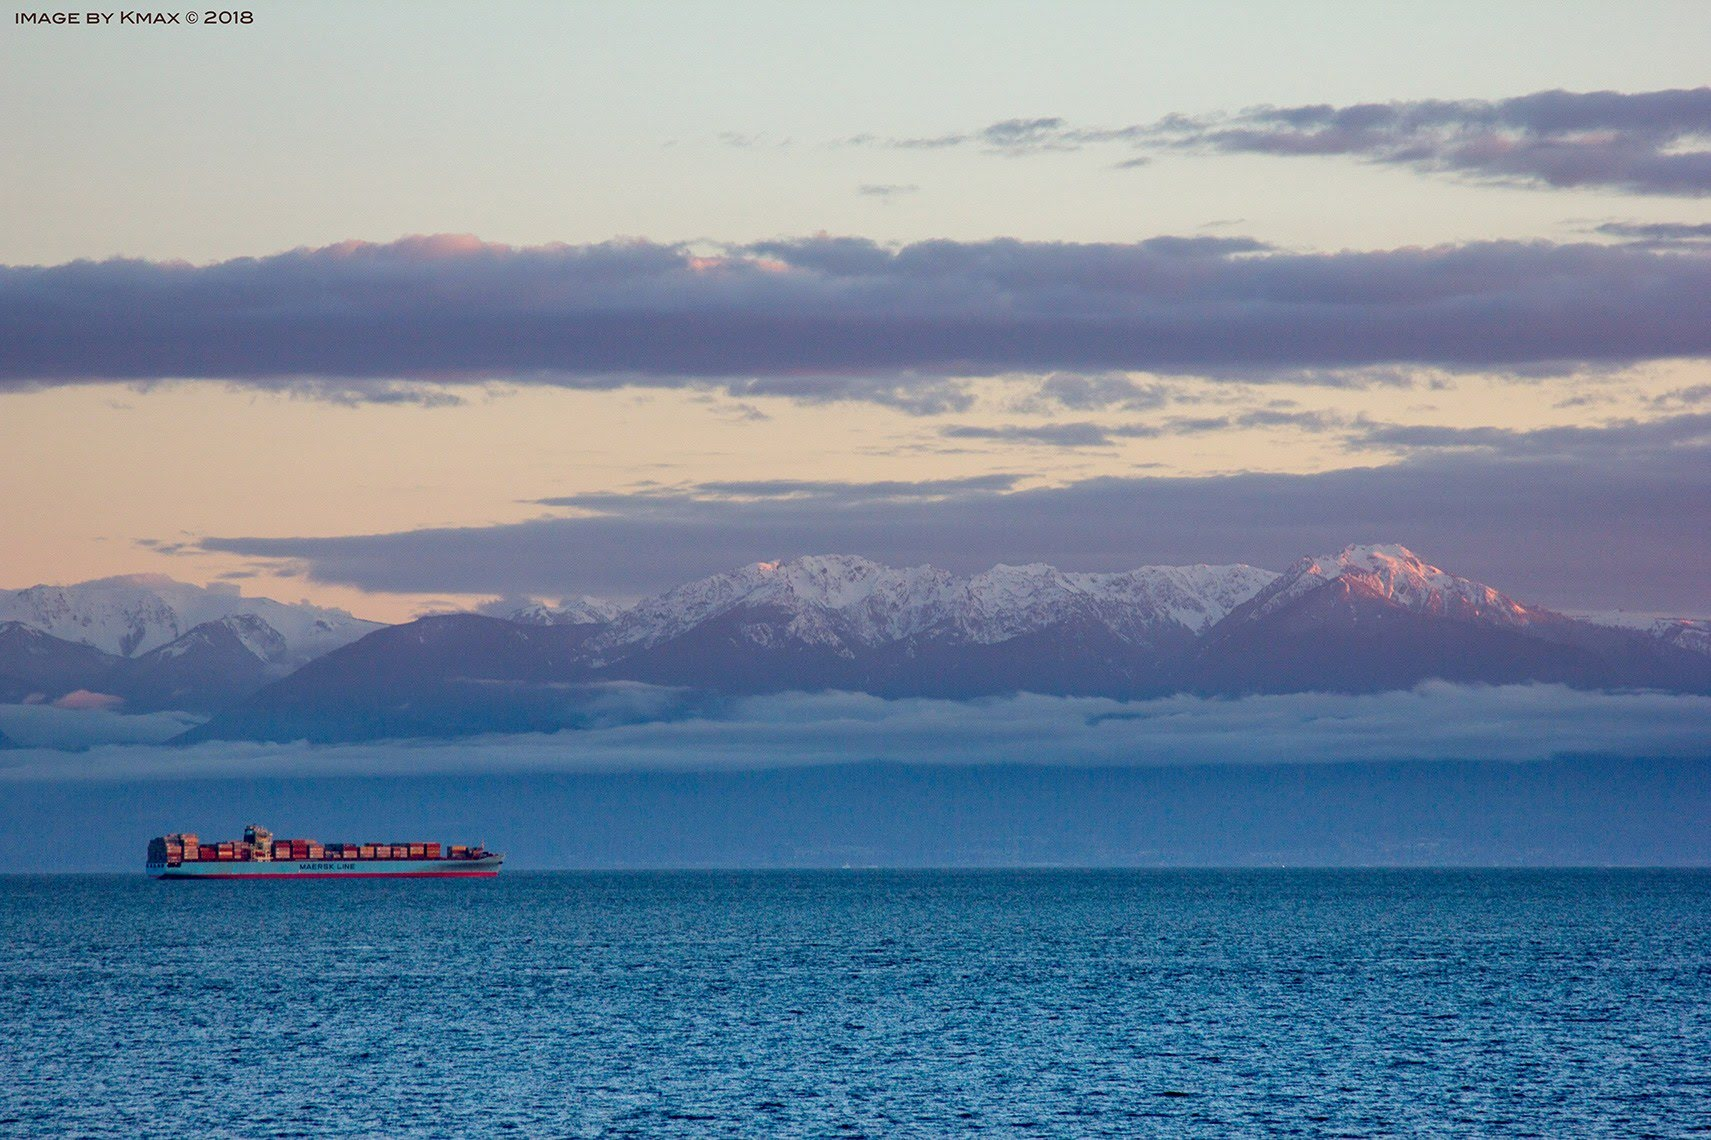 Freighters and Mountains - Victoria BC Canada